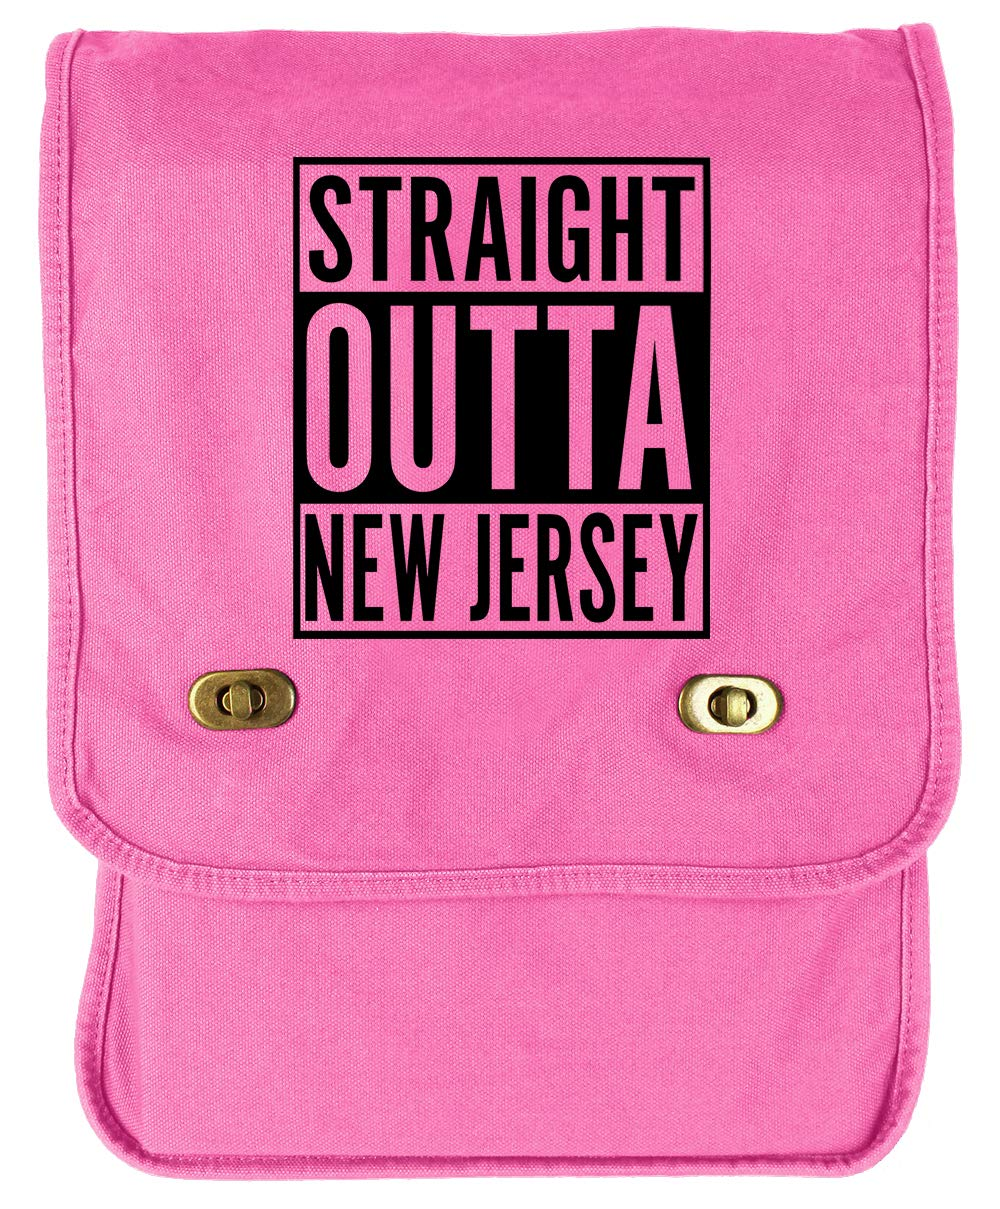 Tenacitee Straight Outta New Jersey Navy Brushed Canvas Messenger Bag